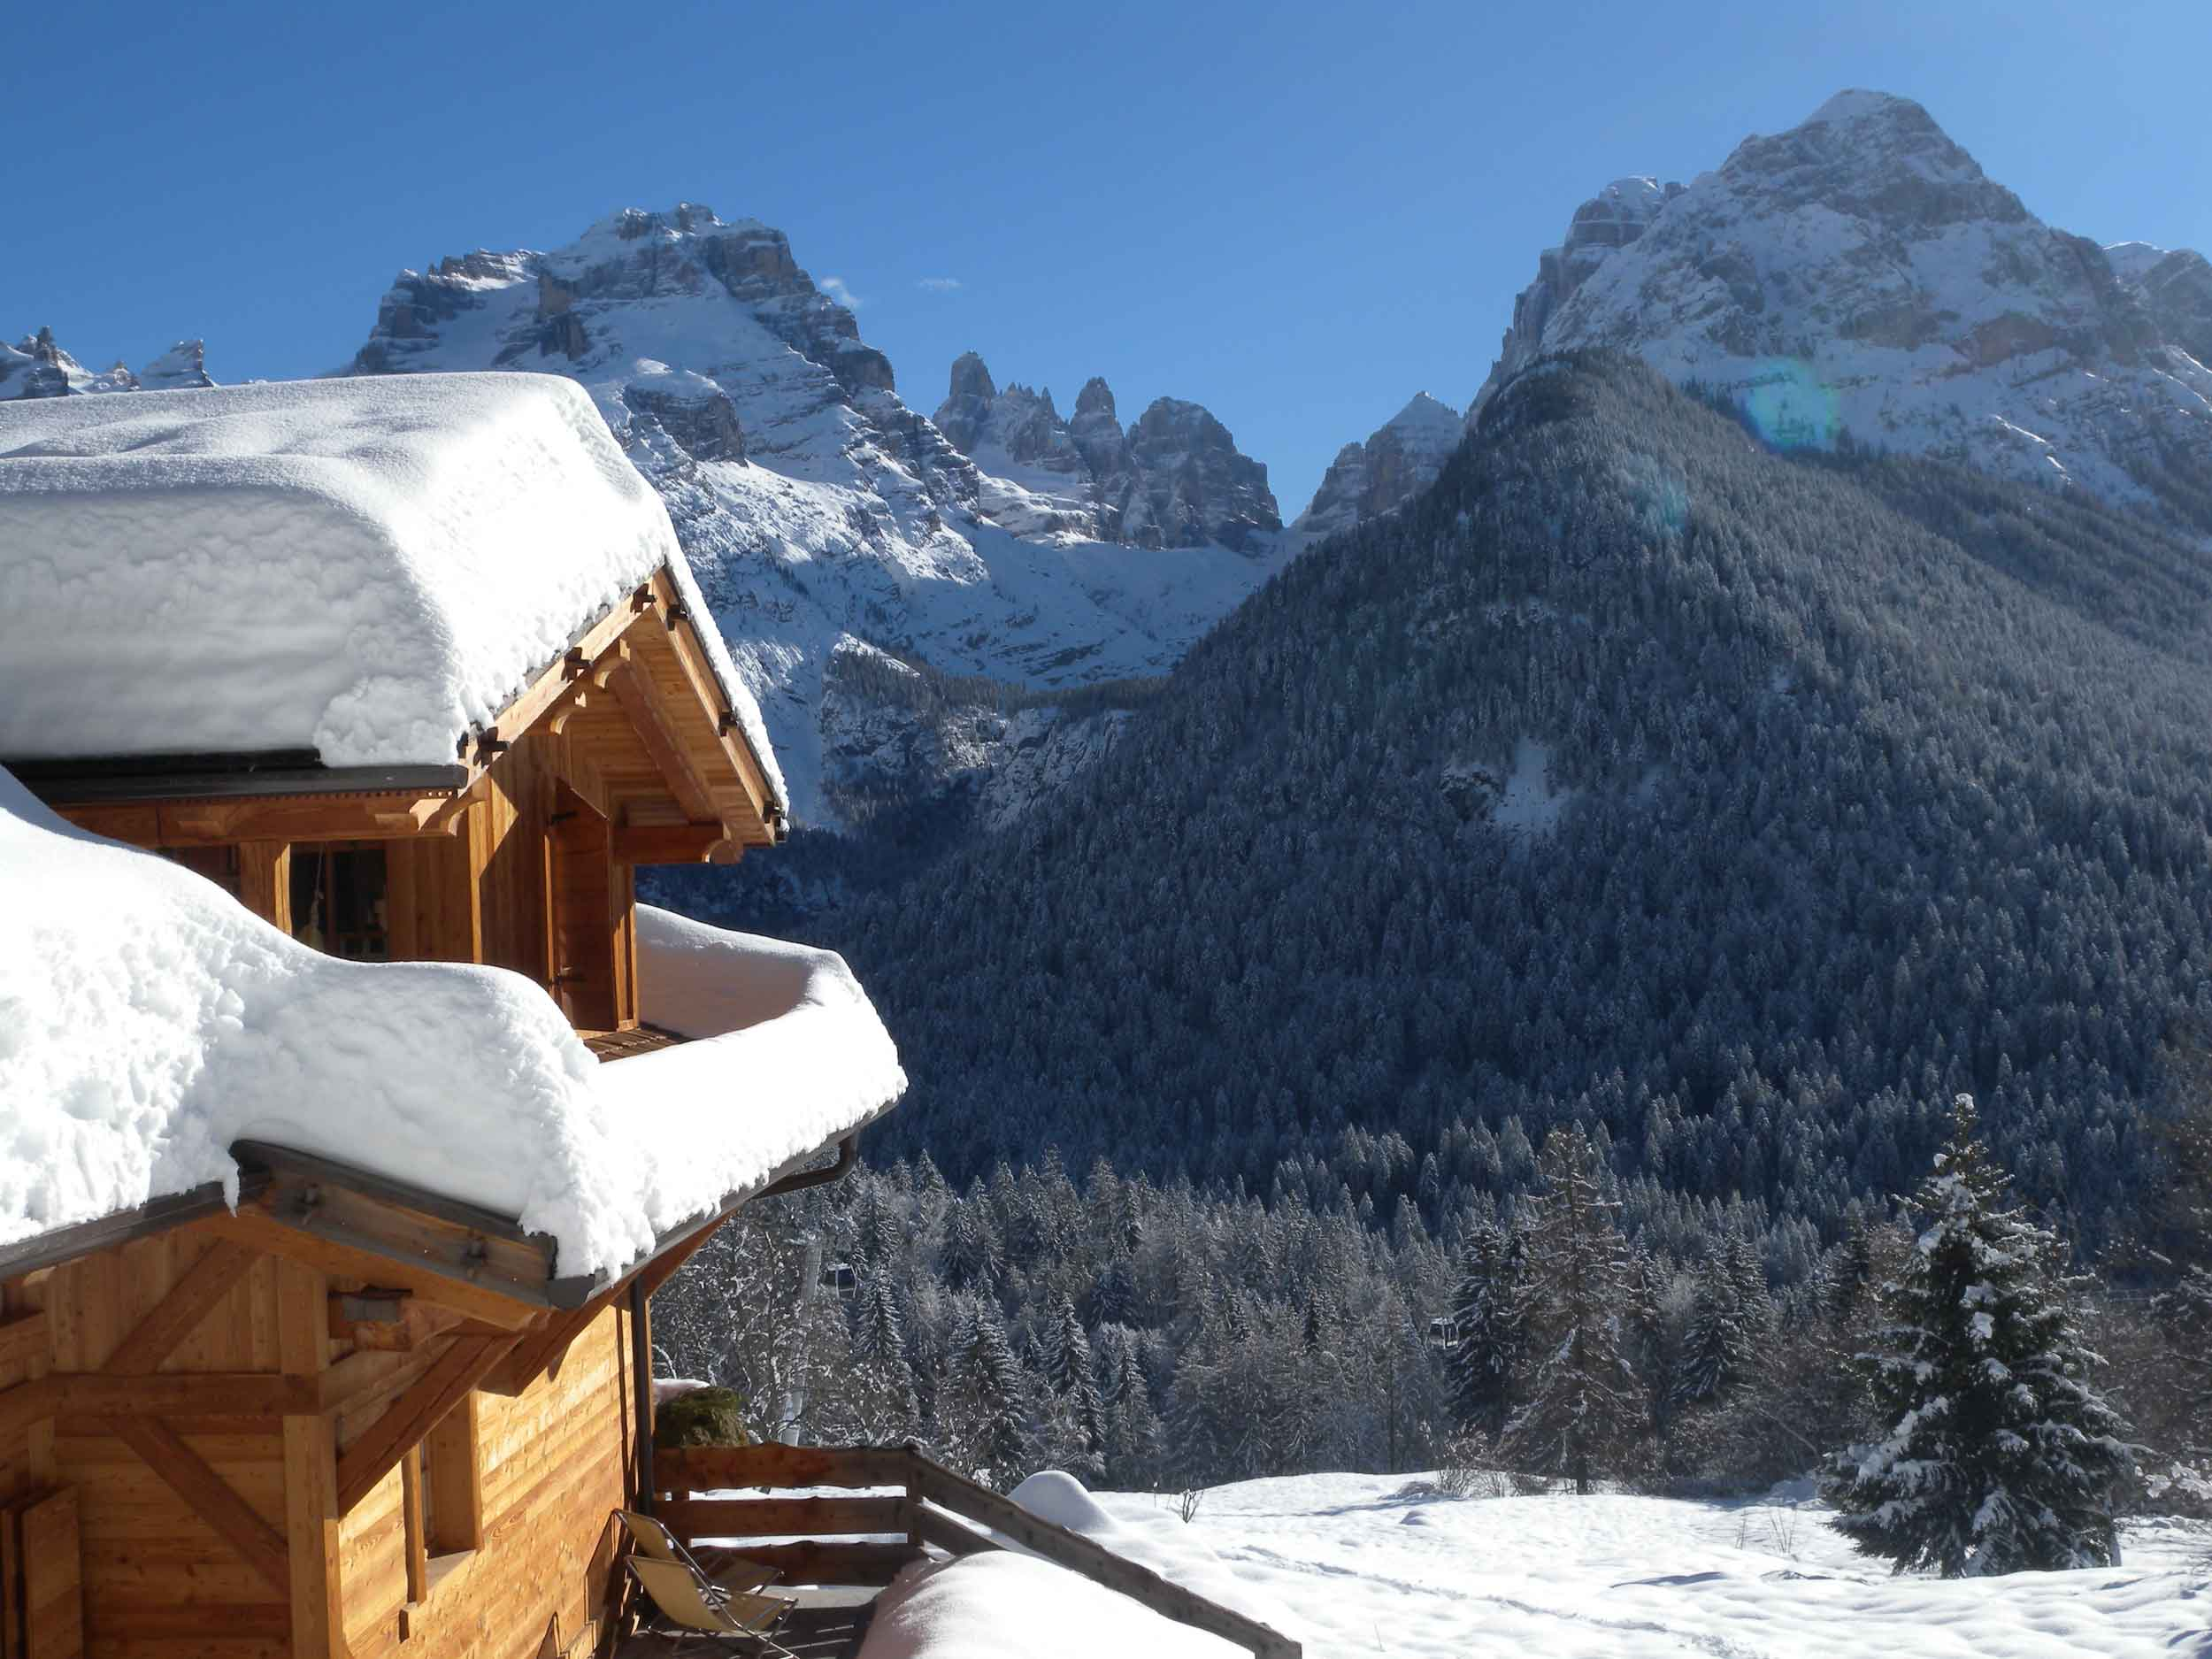 The Brenta Dolomites form the dramatic backdrop to this eco-friendly Alpine chalet, 3 km from the village and winter resort of Madonna di Campiglio.